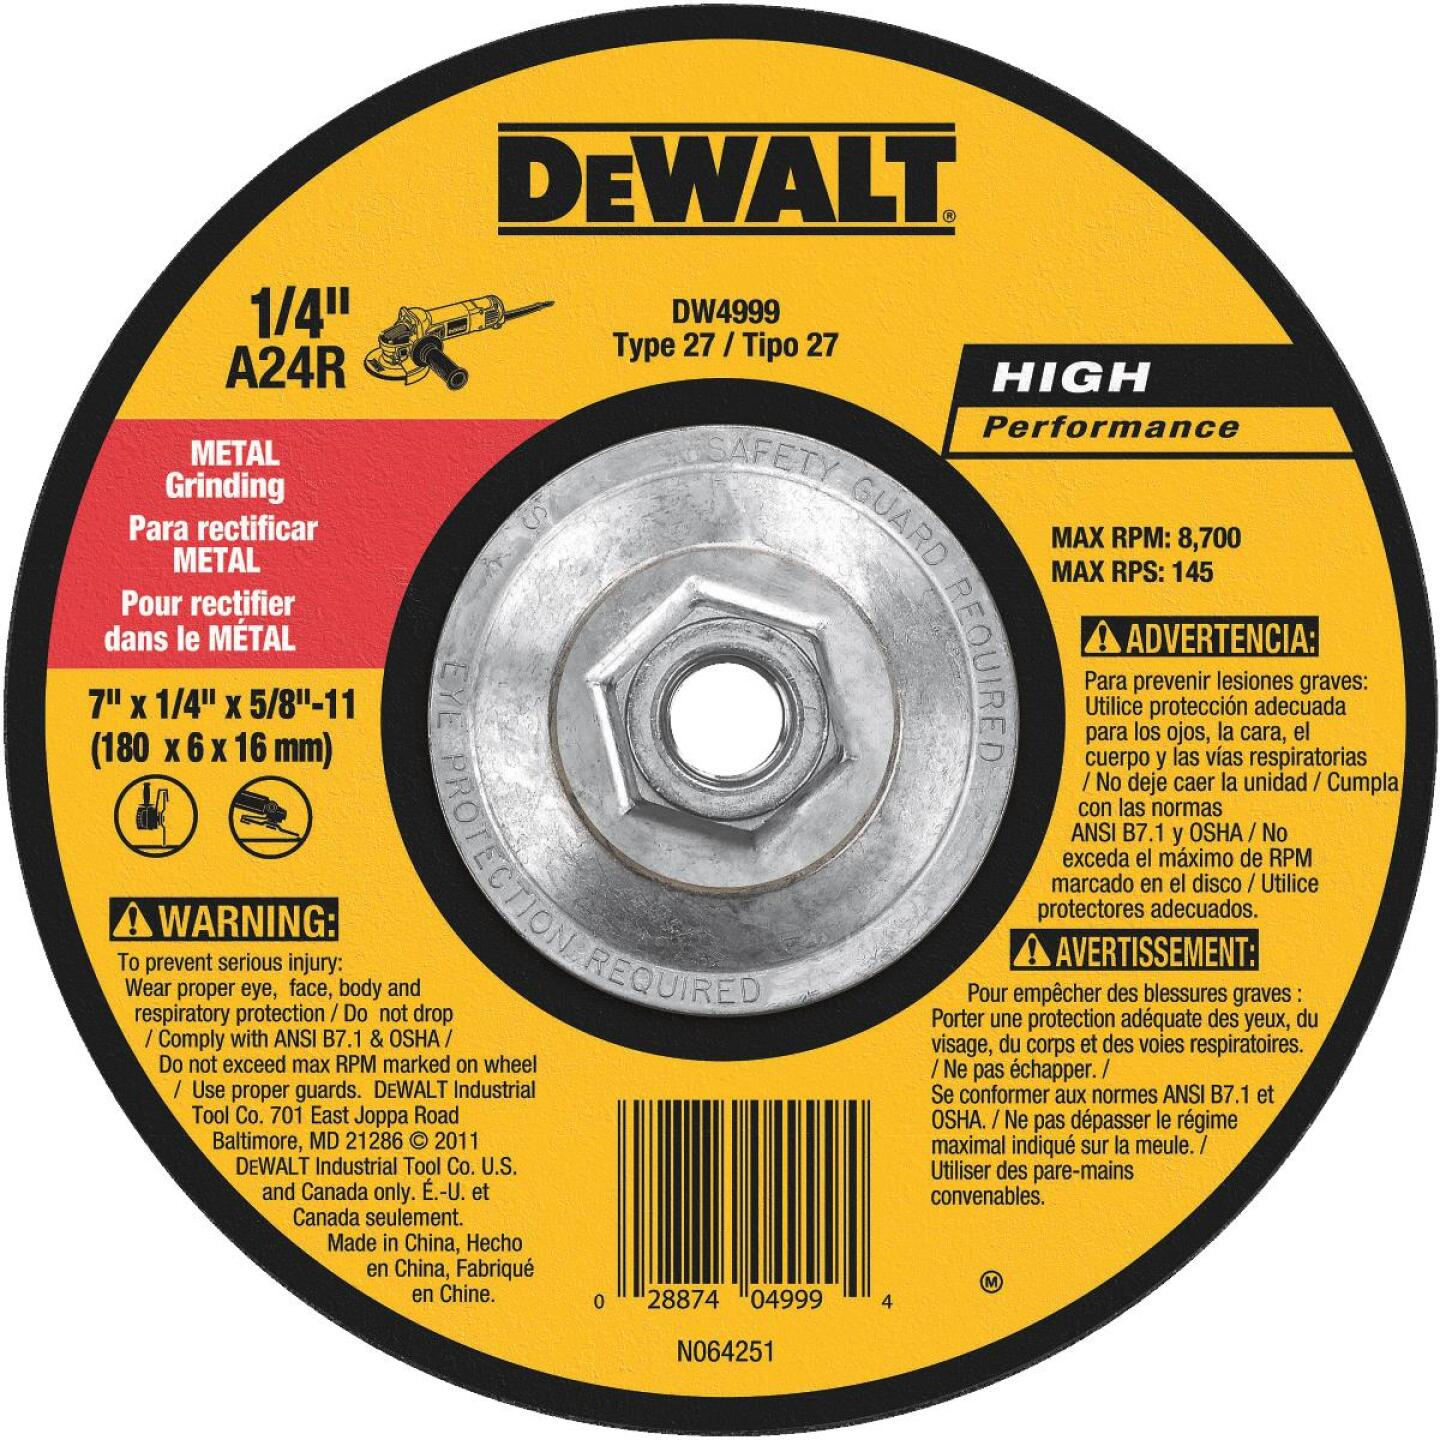 DeWalt HP Type 27 7 In. x 1/4 In. x 5/8 In.-11 Metal Grinding Cut-Off Wheel Image 1